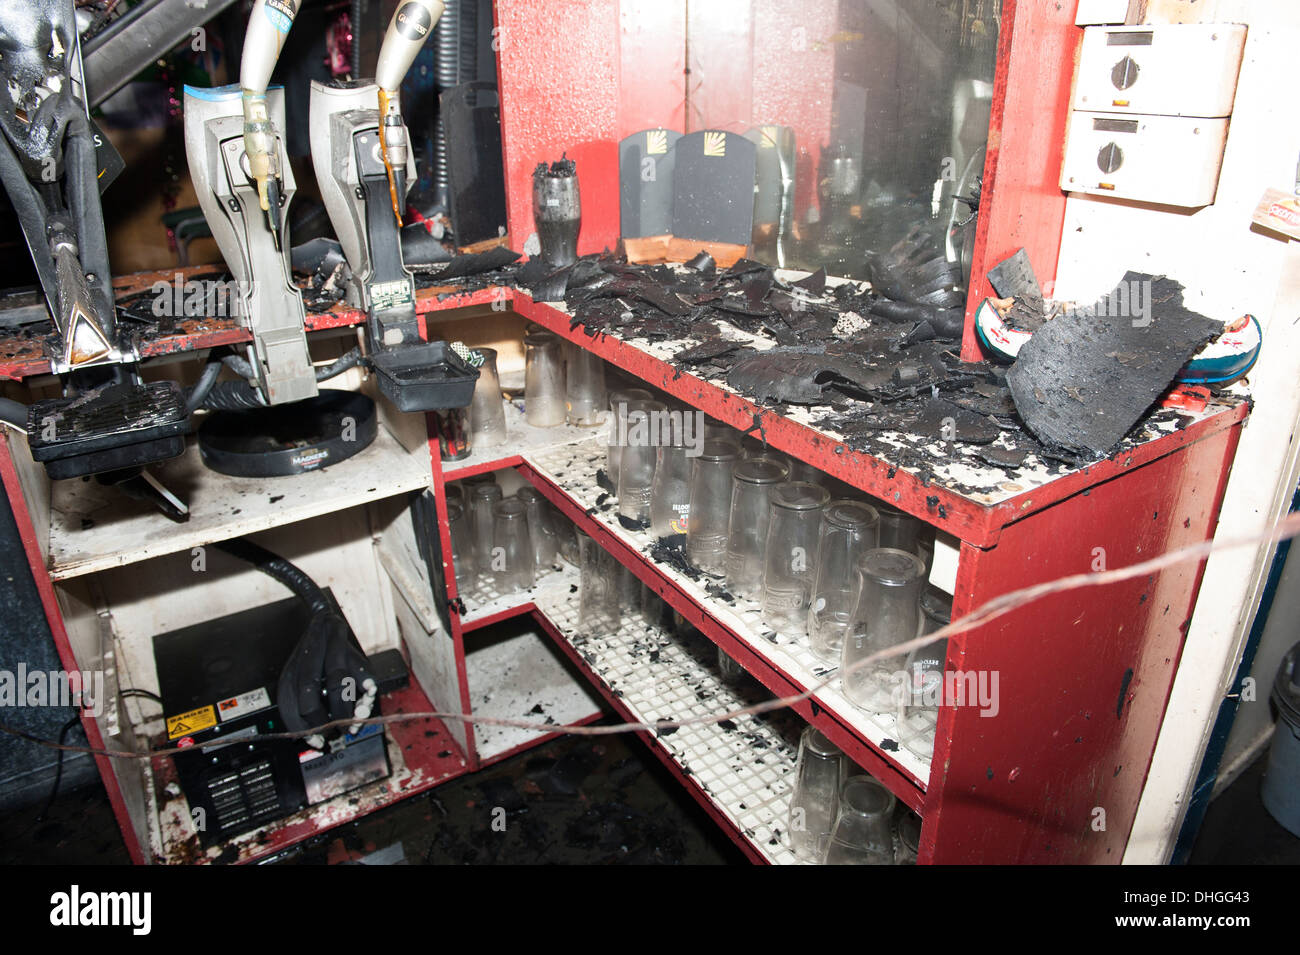 Burnt out club bar pub fire arson charred insurance - Stock Image